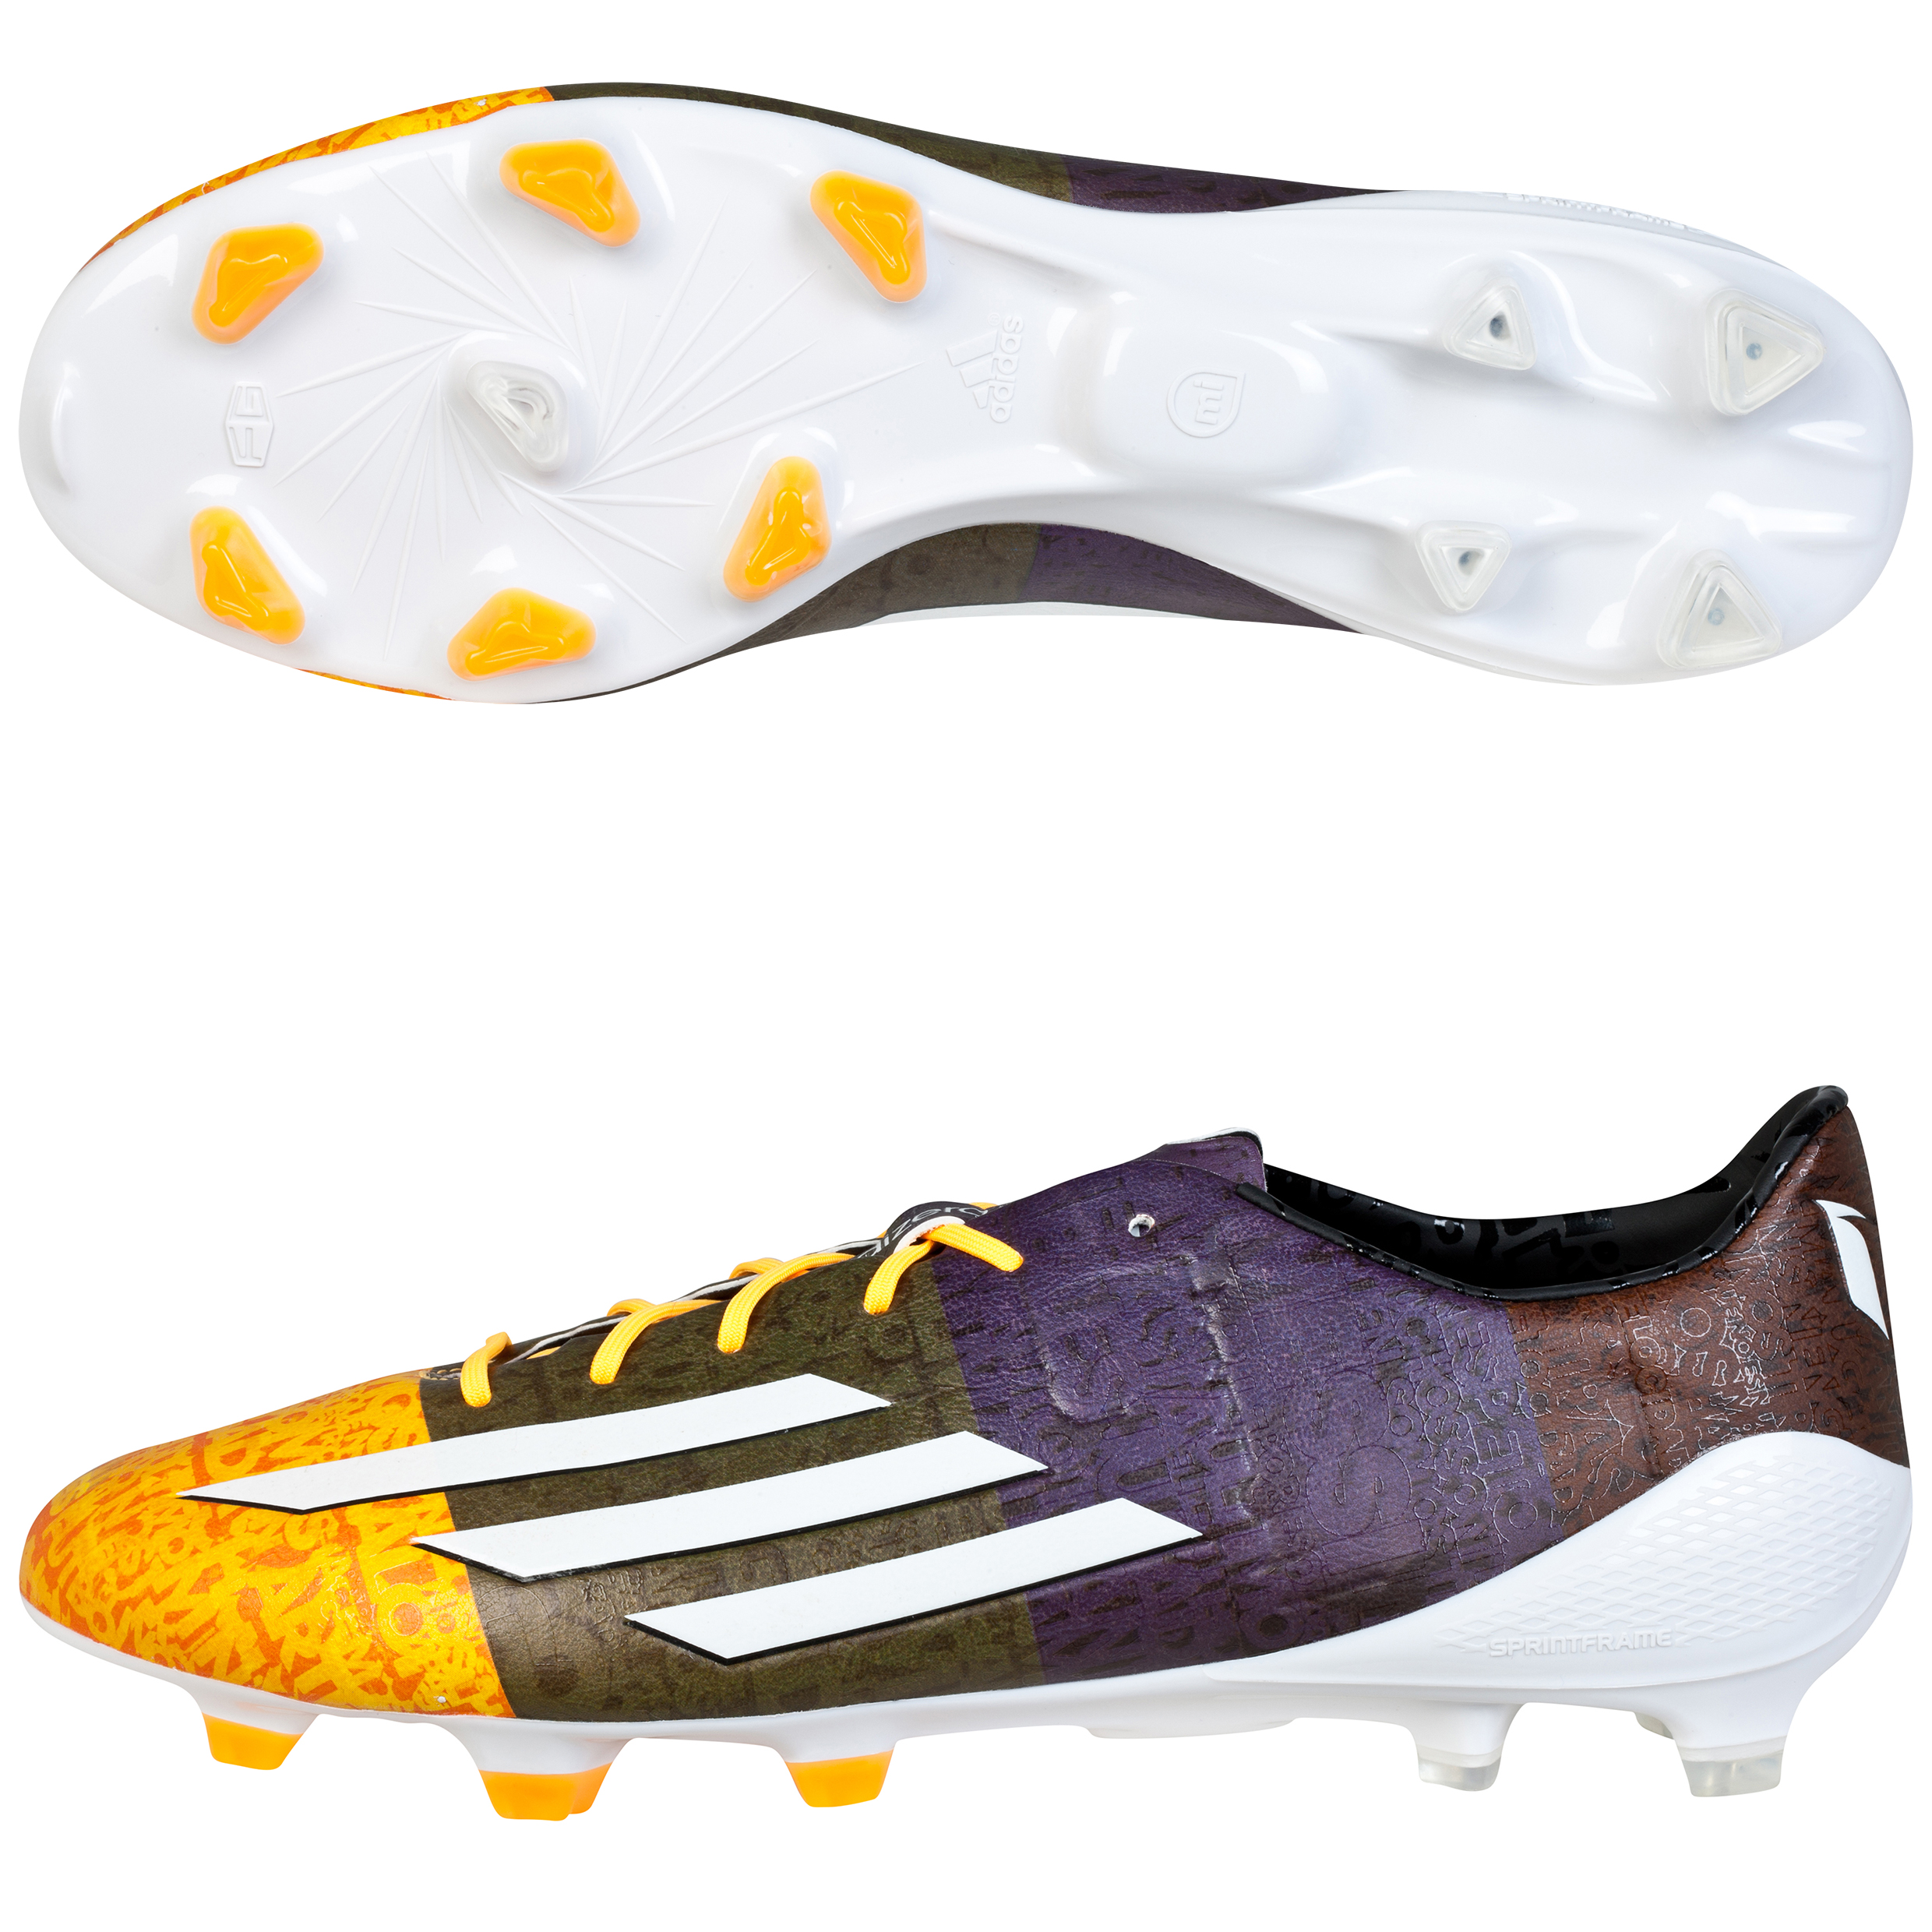 Adidas F50 adizero Messi Firm Ground Football Boots Orange